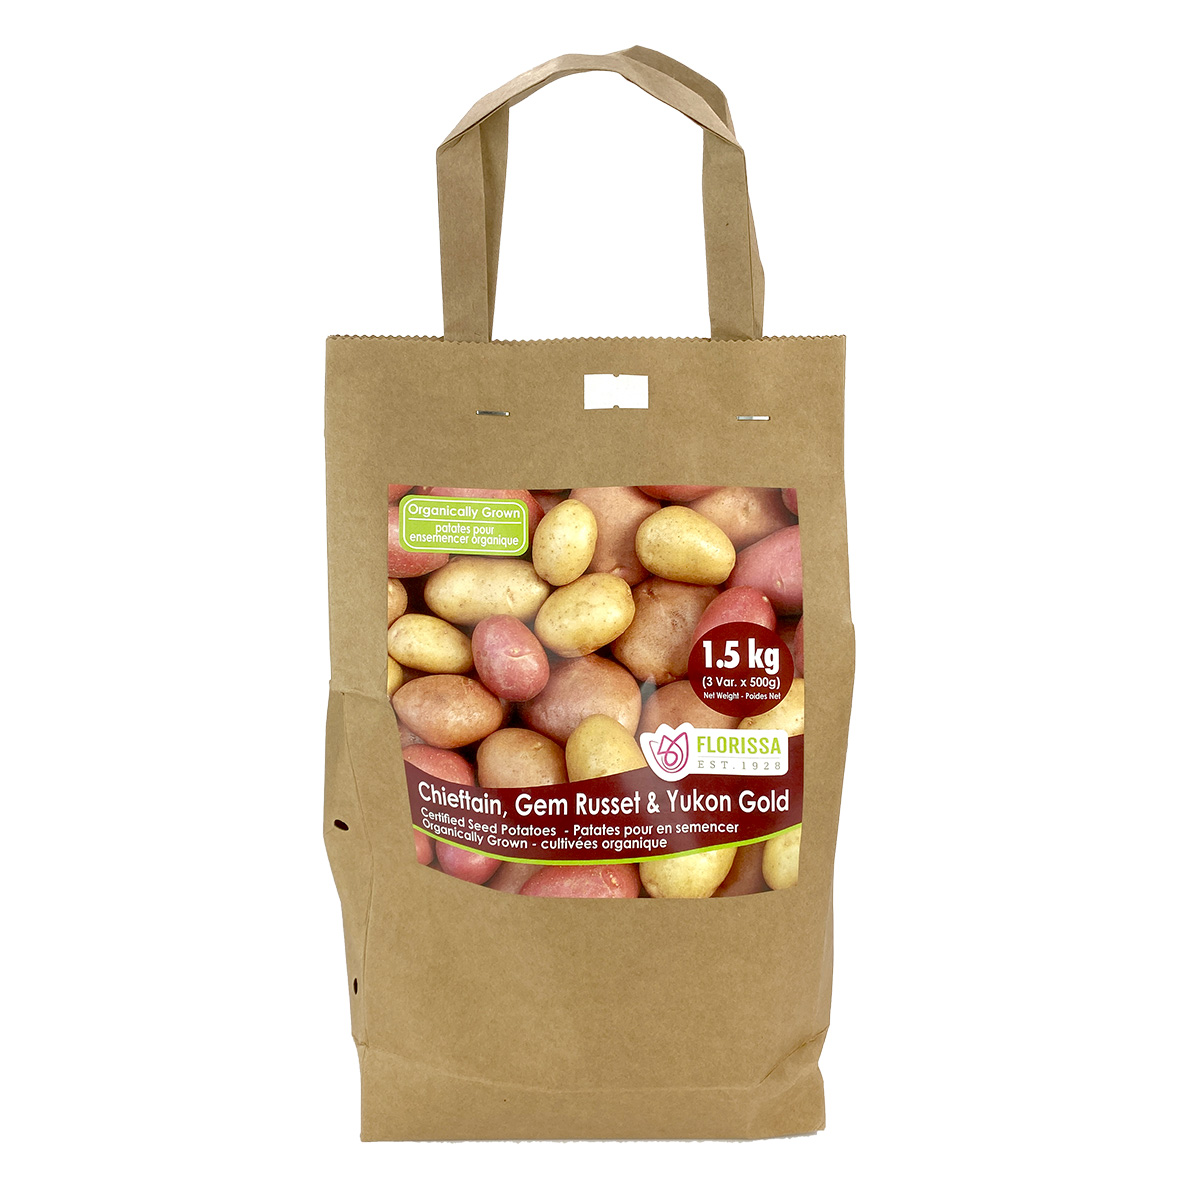 Certified Seed Potatoes Chieftain Gem Russet and Yukon Gold 1.5kg